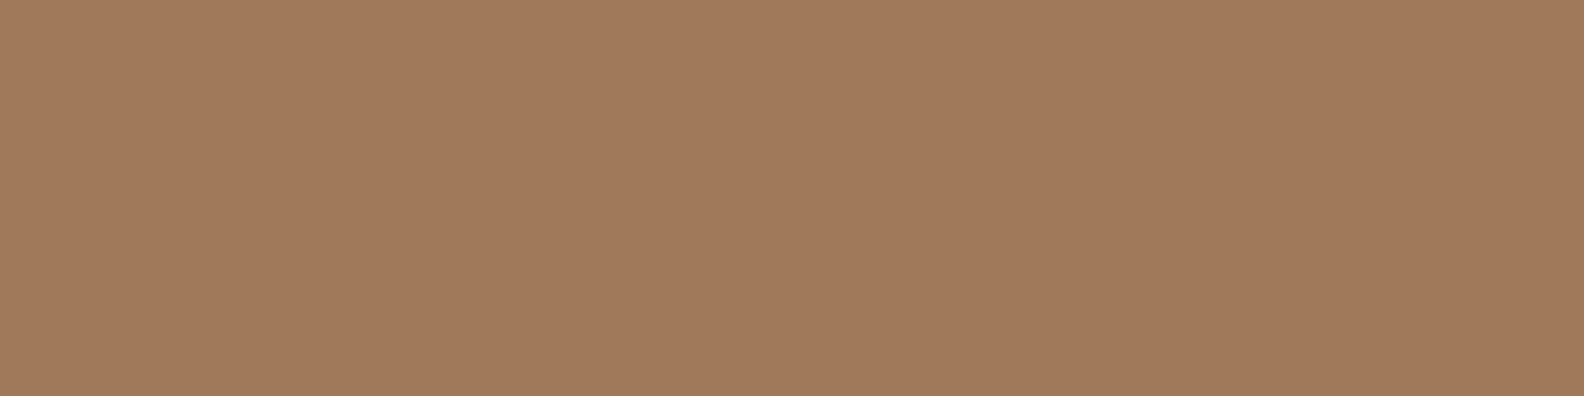 1584x396 Chamoisee Solid Color Background